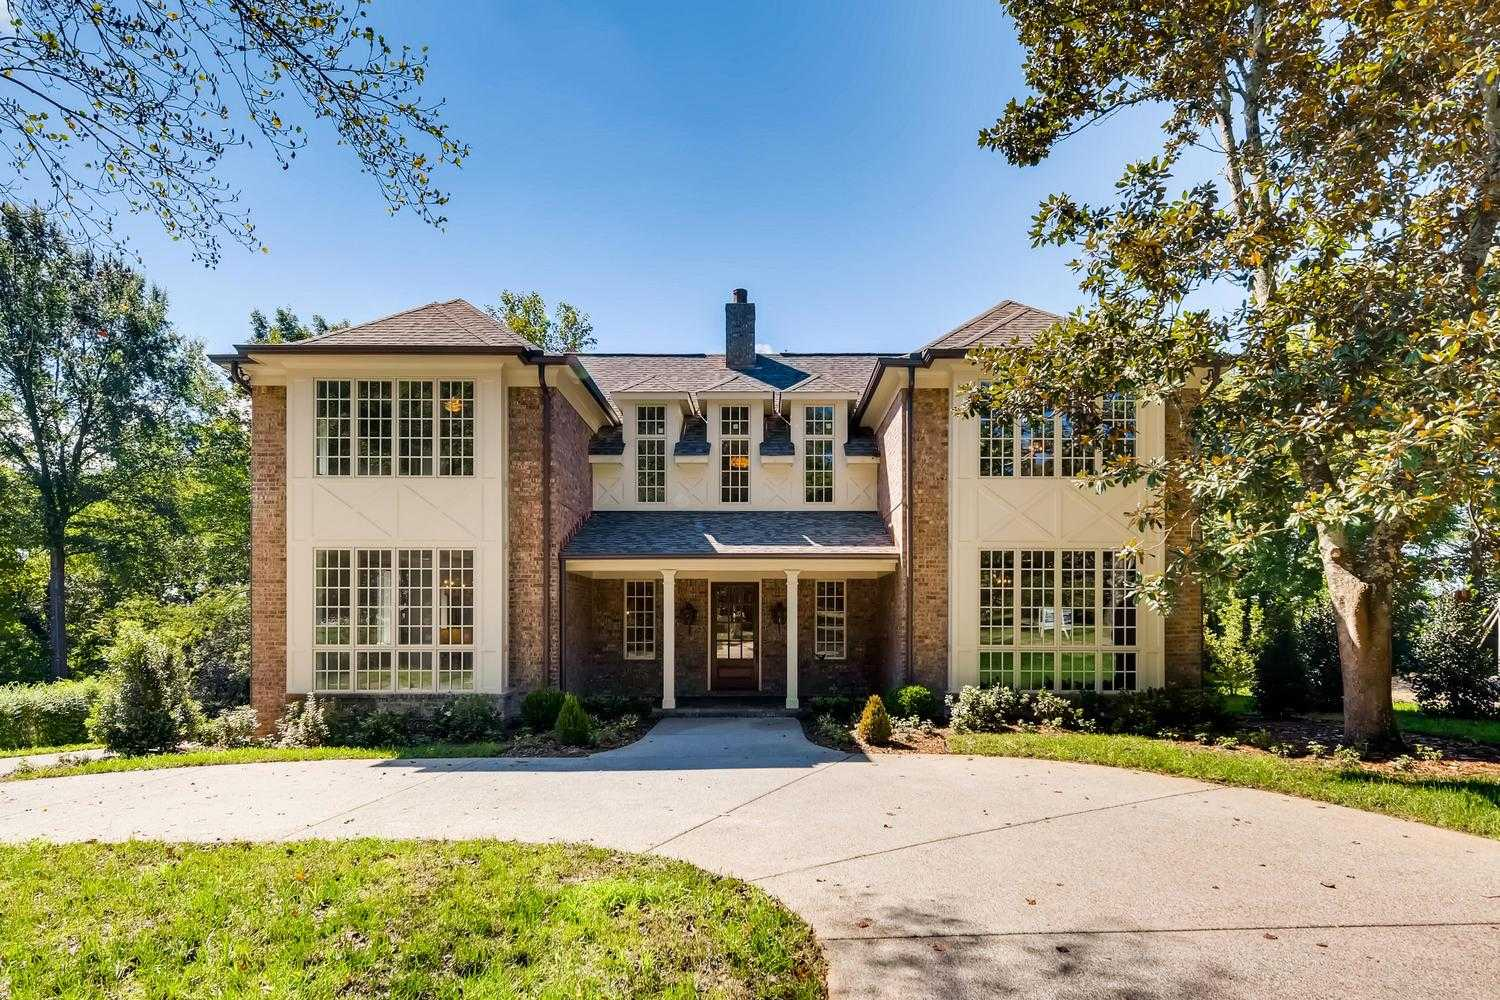 $1,849,000 - 5Br/6Ba -  for Sale in 2811 Wimbleton Drive Estat, Nashville